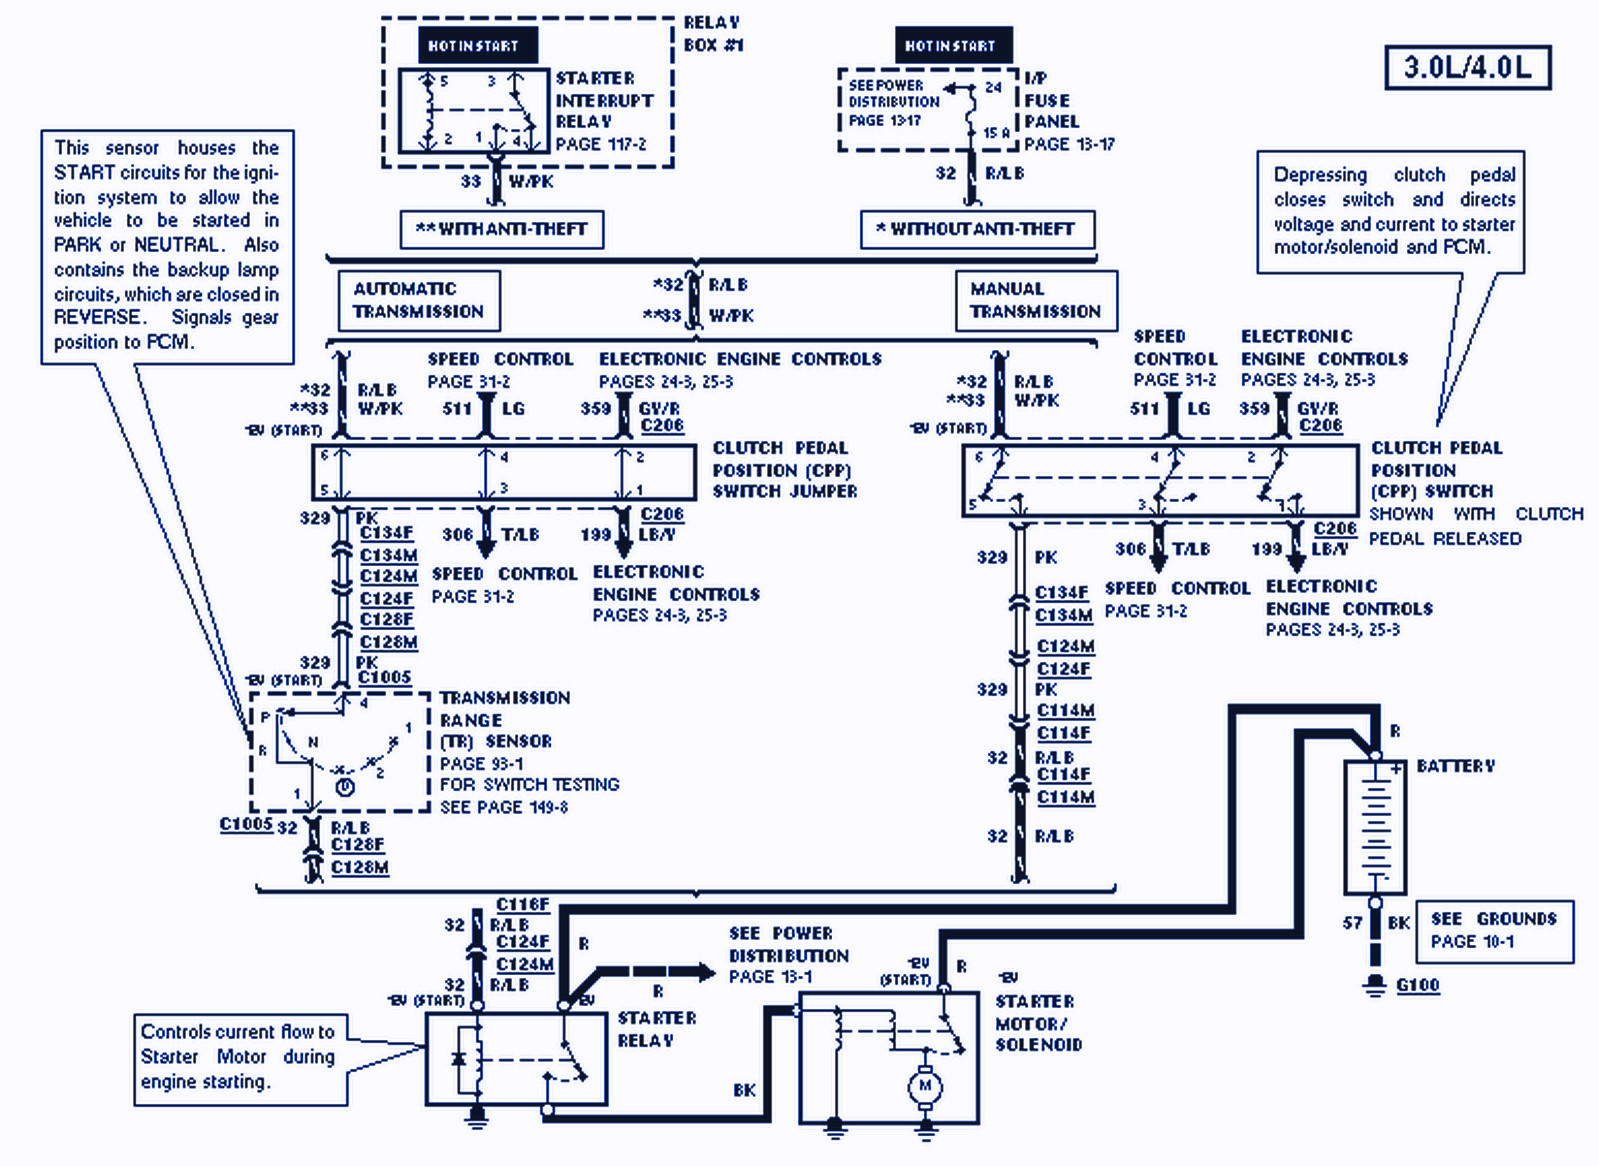 hight resolution of 1995 ford e350 wiring diagram simple wiring diagram rh david huggett co uk